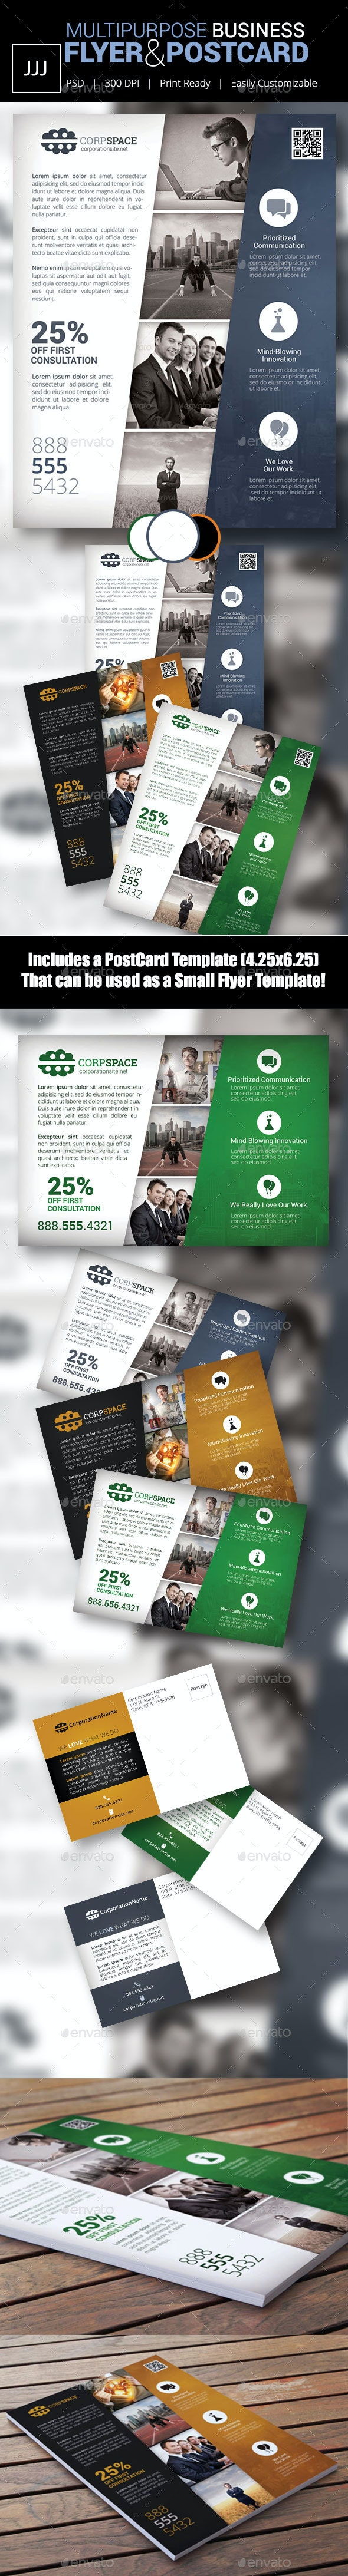 Business Flyer 44 with Postcard Option - Corporate Flyers